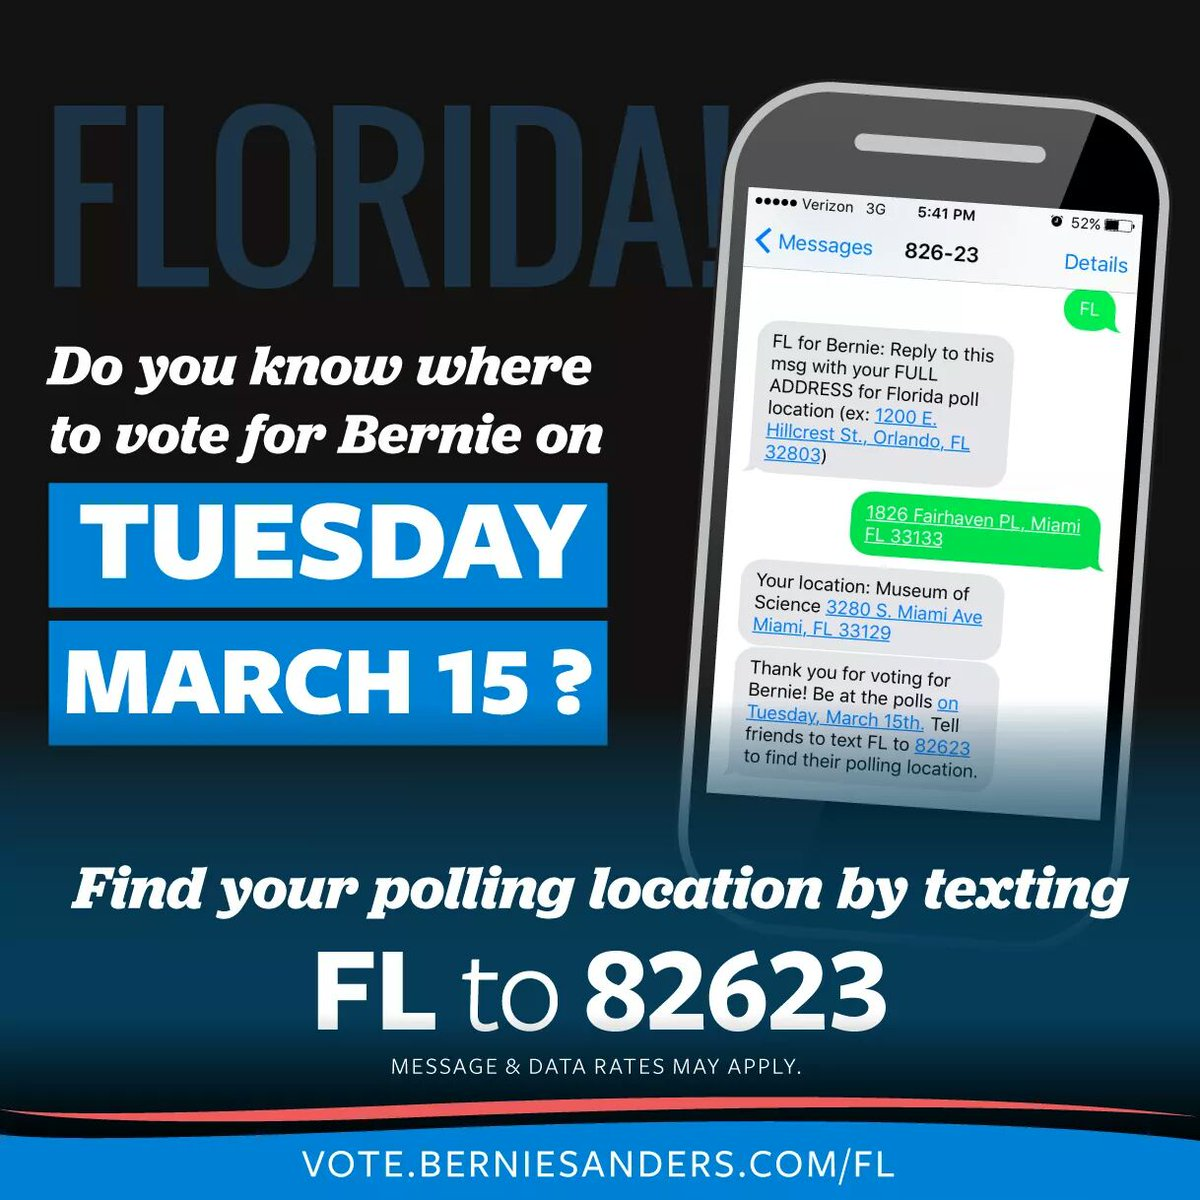 >1 hour to vote in #FloridaPrimary! Find your polling place by texting FL to 82623. #ivoted #FeelTheBern #NeverTrump https://t.co/TiFyWGTPo5